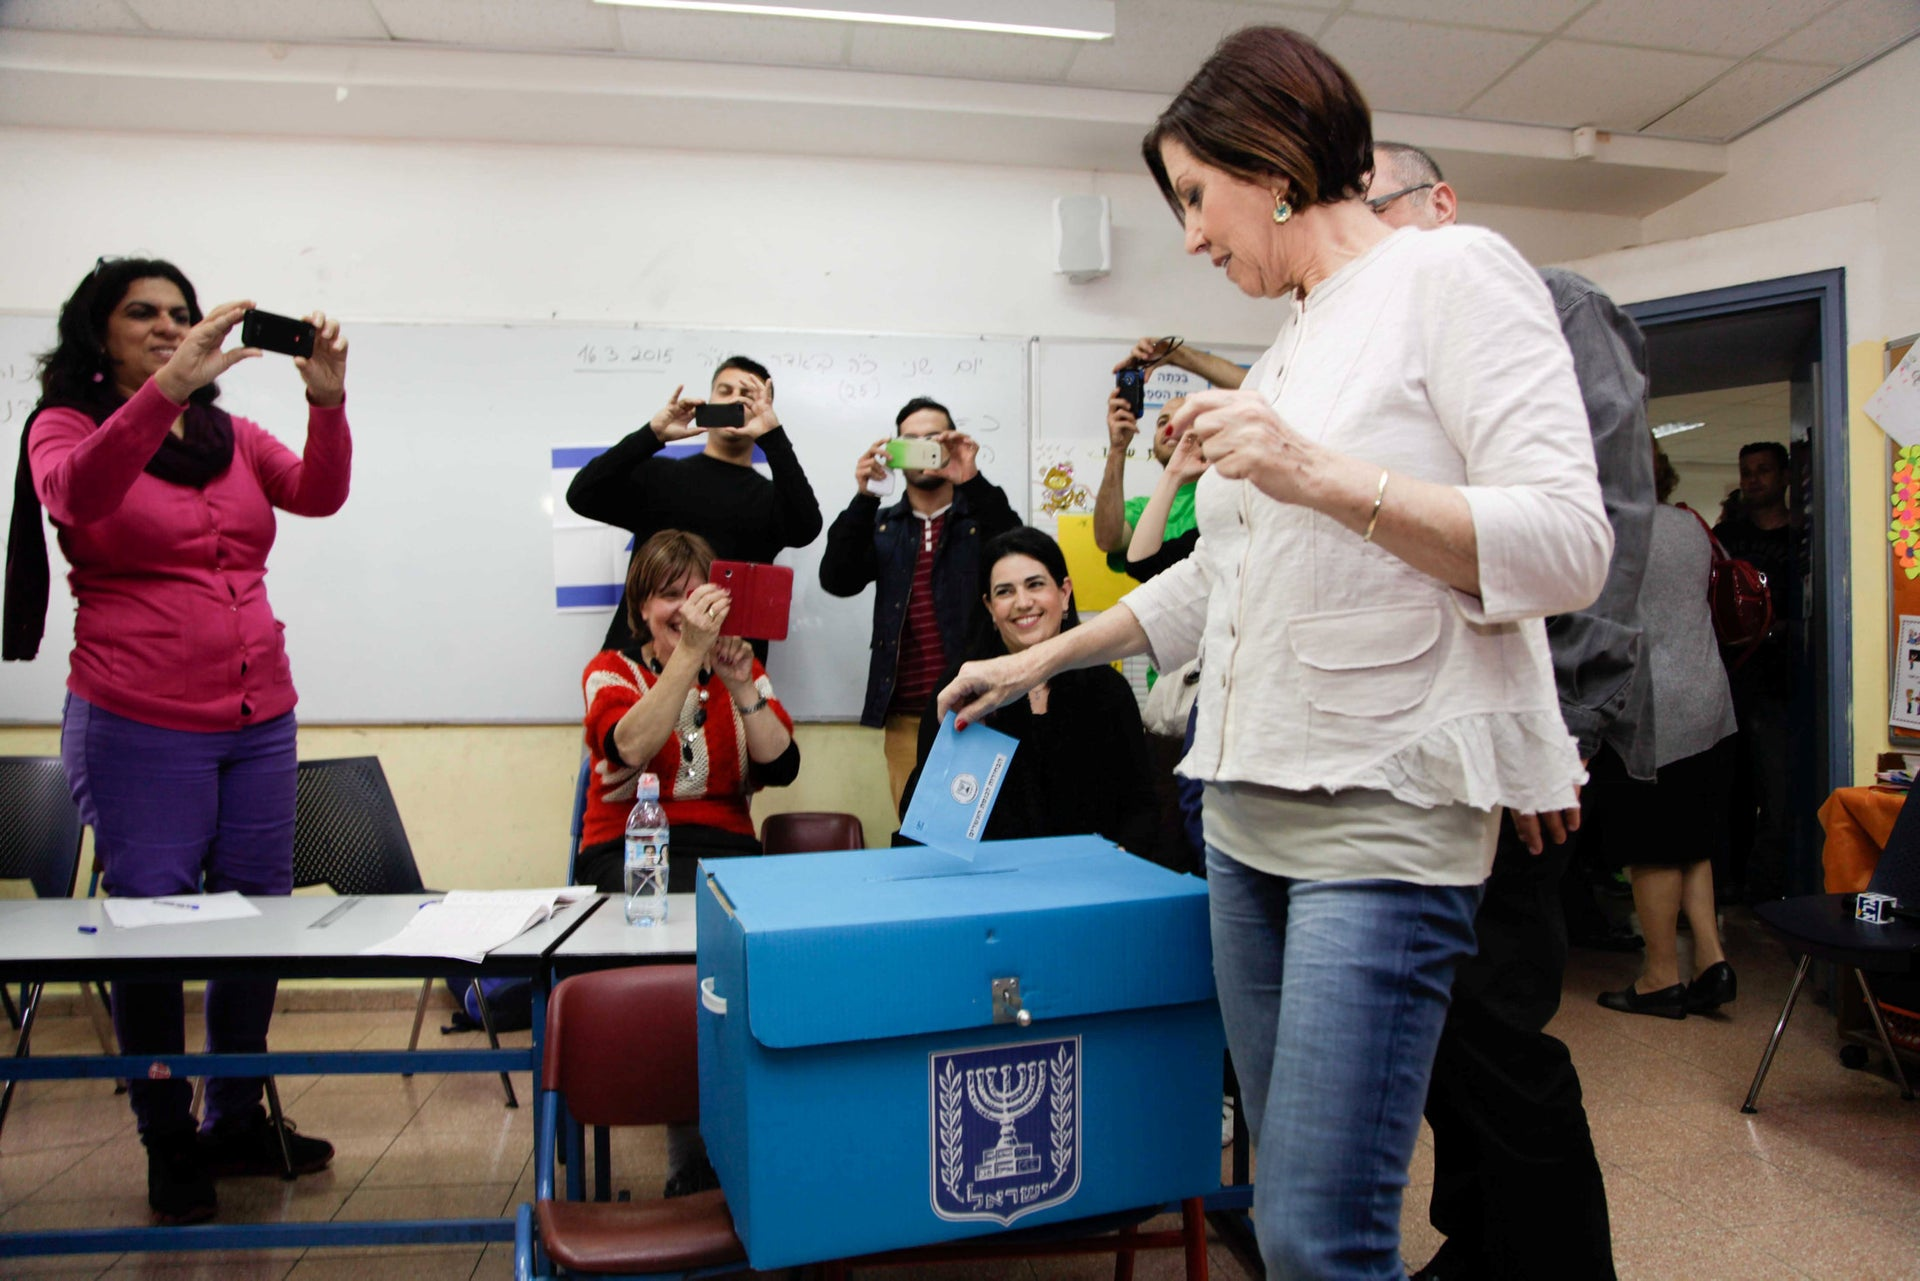 Then-Meretz chief Zehava Galon voting in a general election, March 17, 2015.